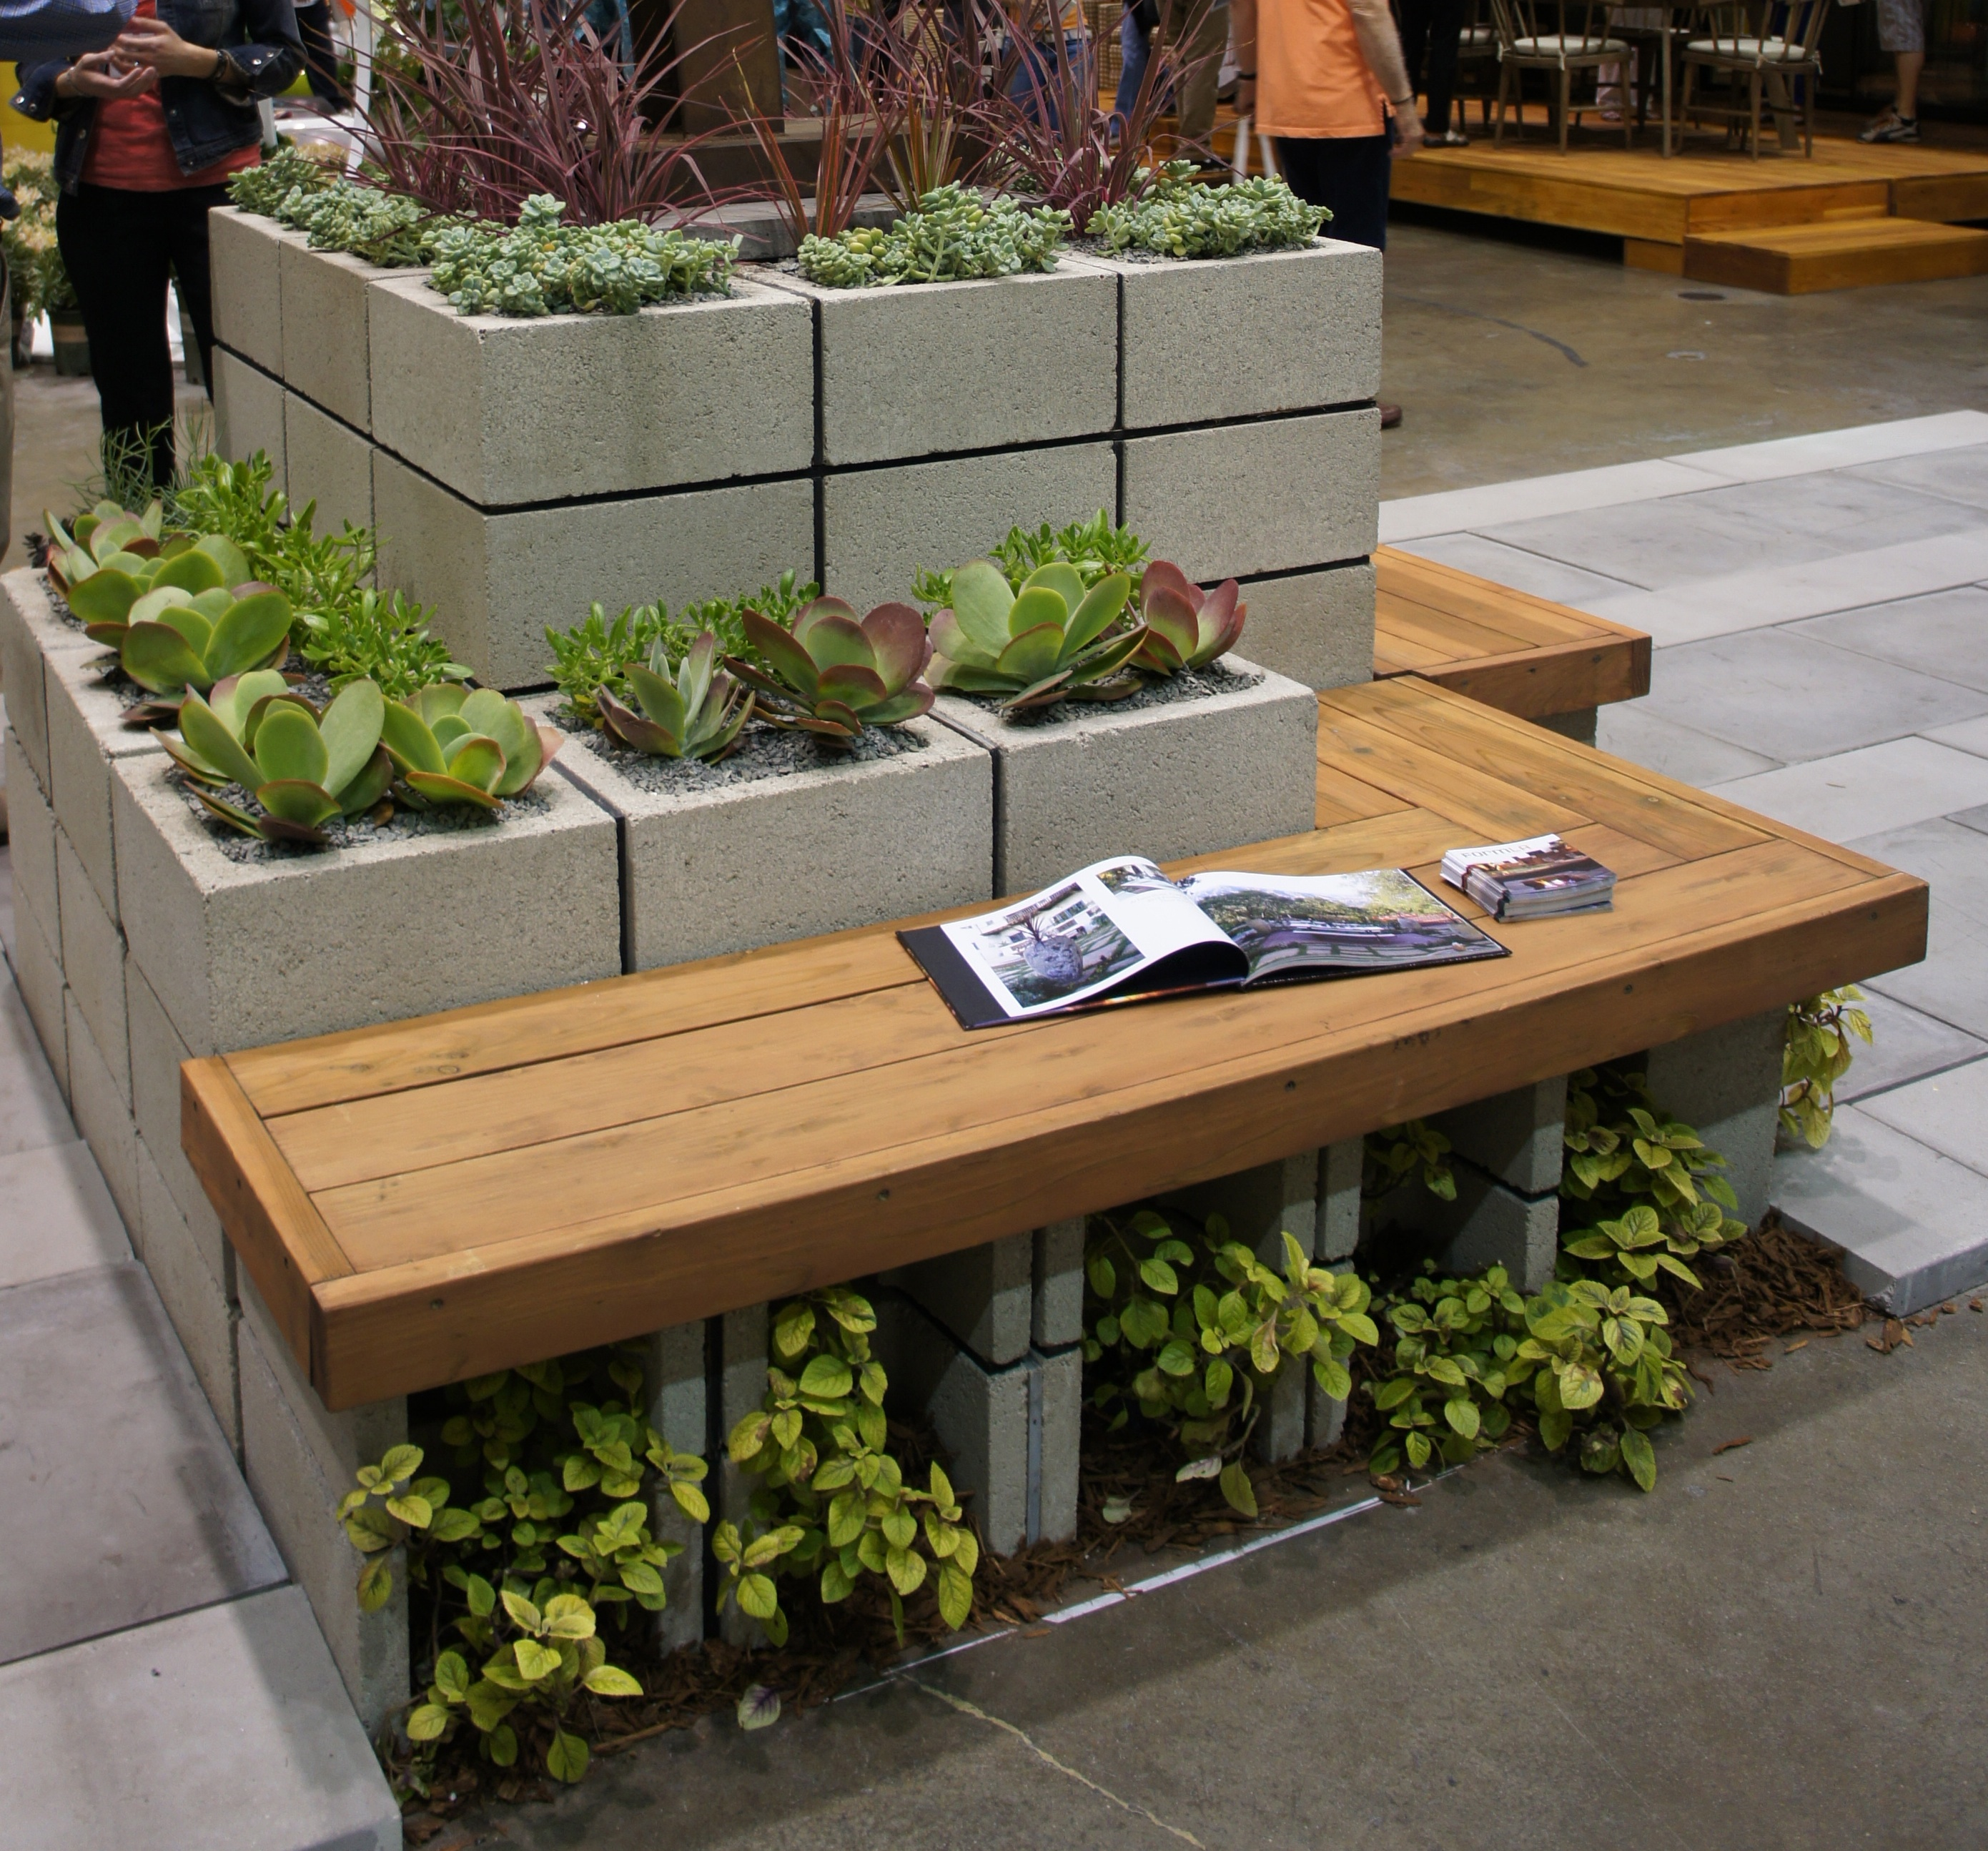 Amazing Cinder Block Garden Bench 2781 x 2589 · 1880 kB · jpeg